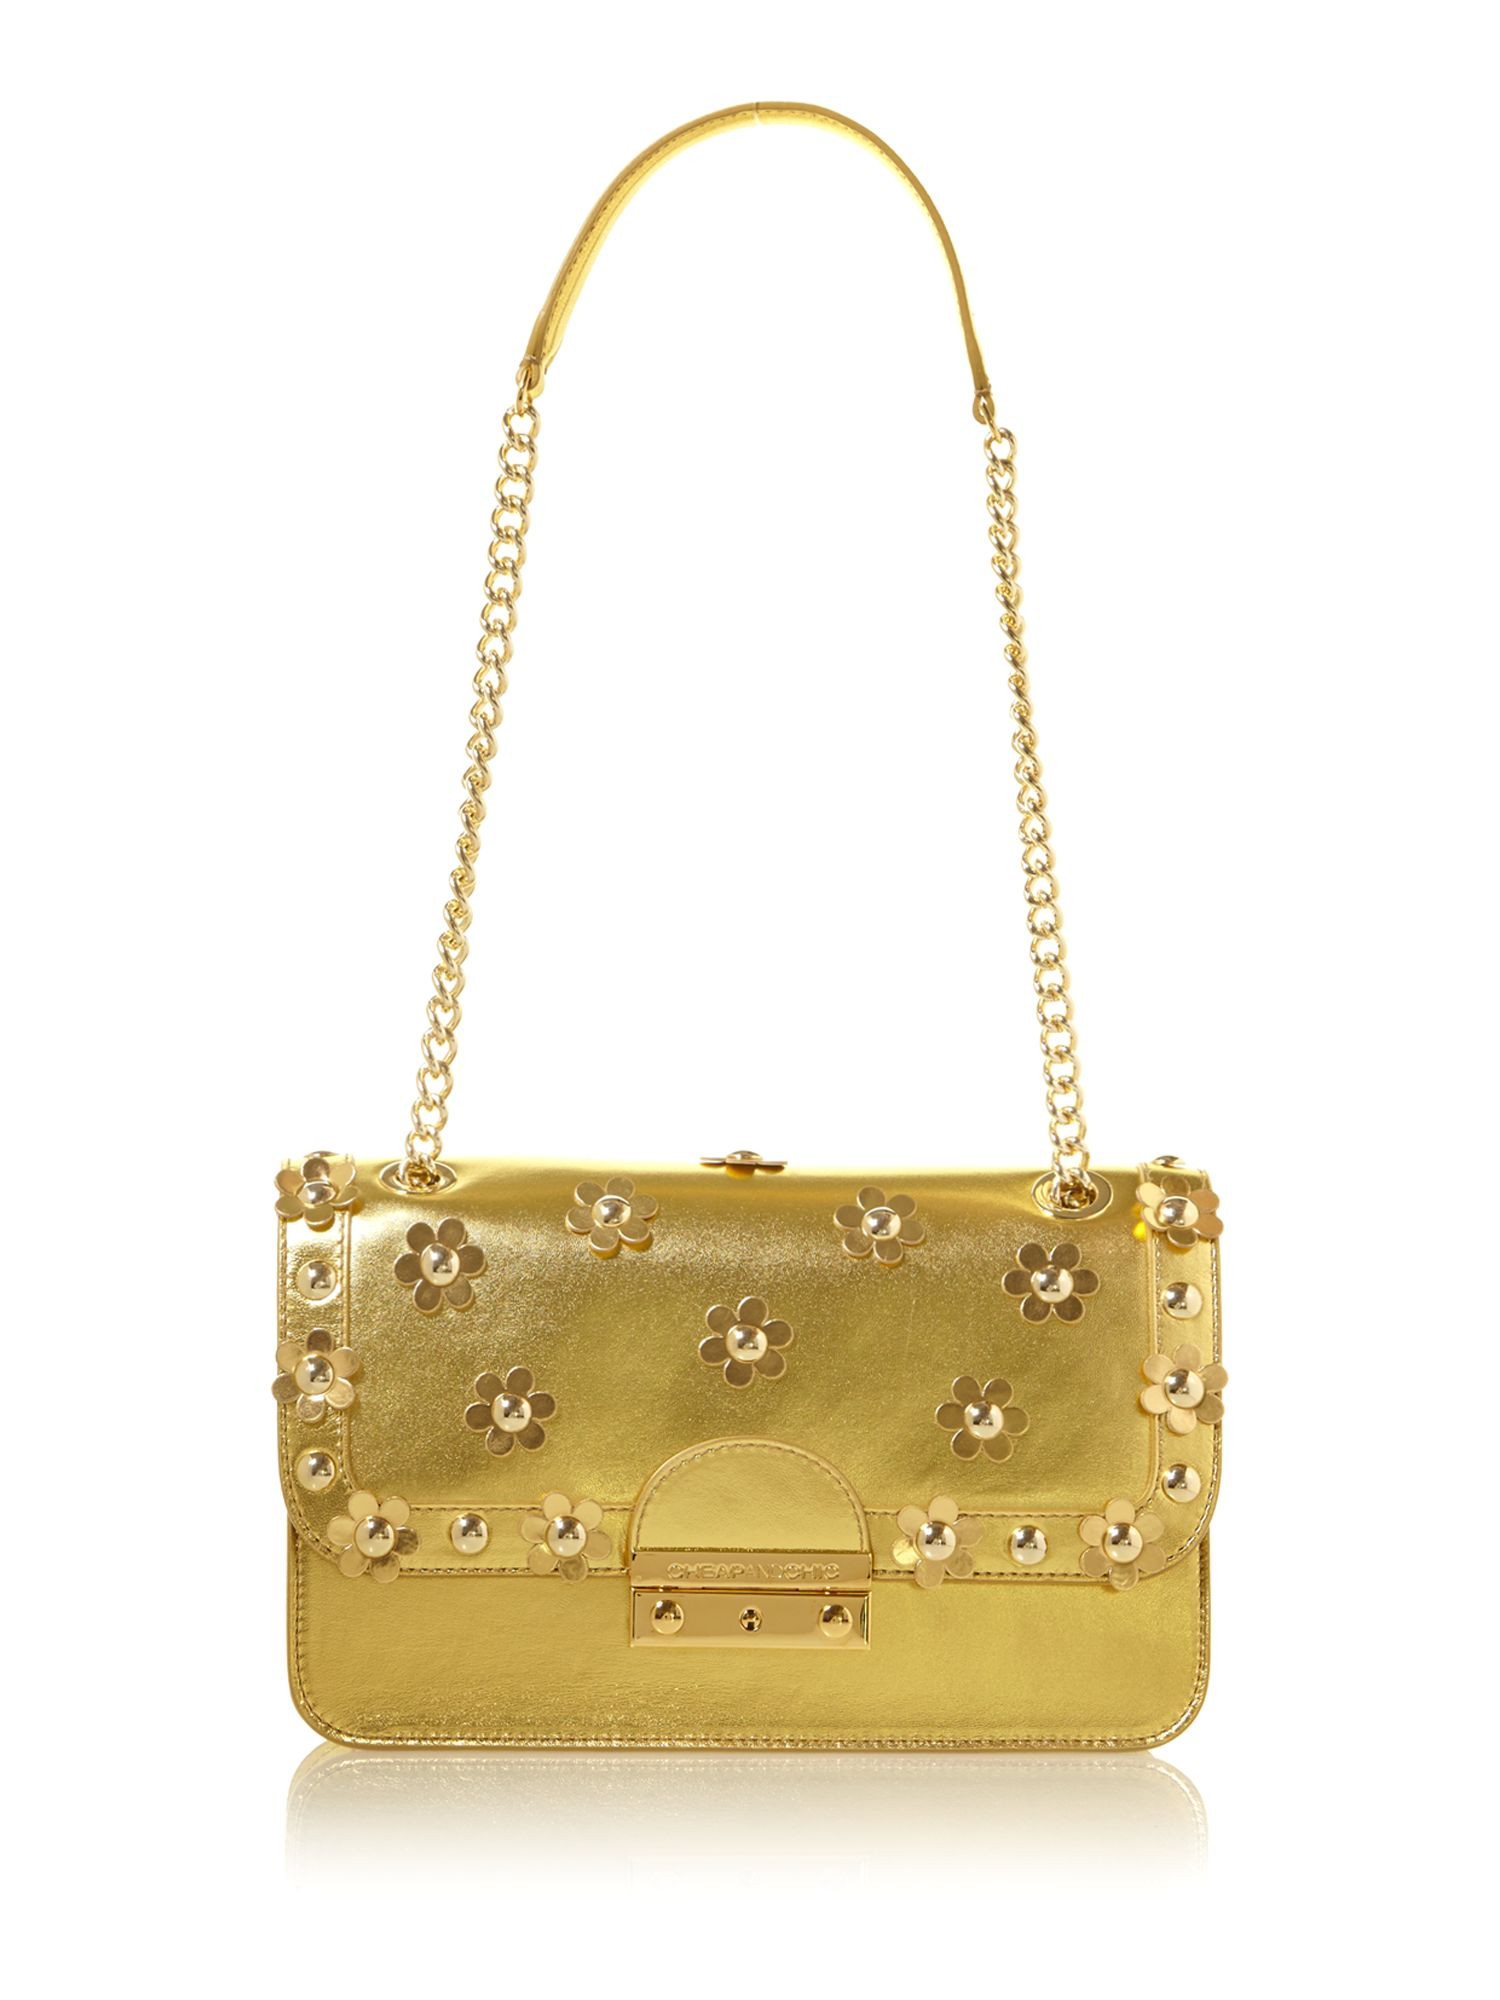 Applique gold small shoulder bag